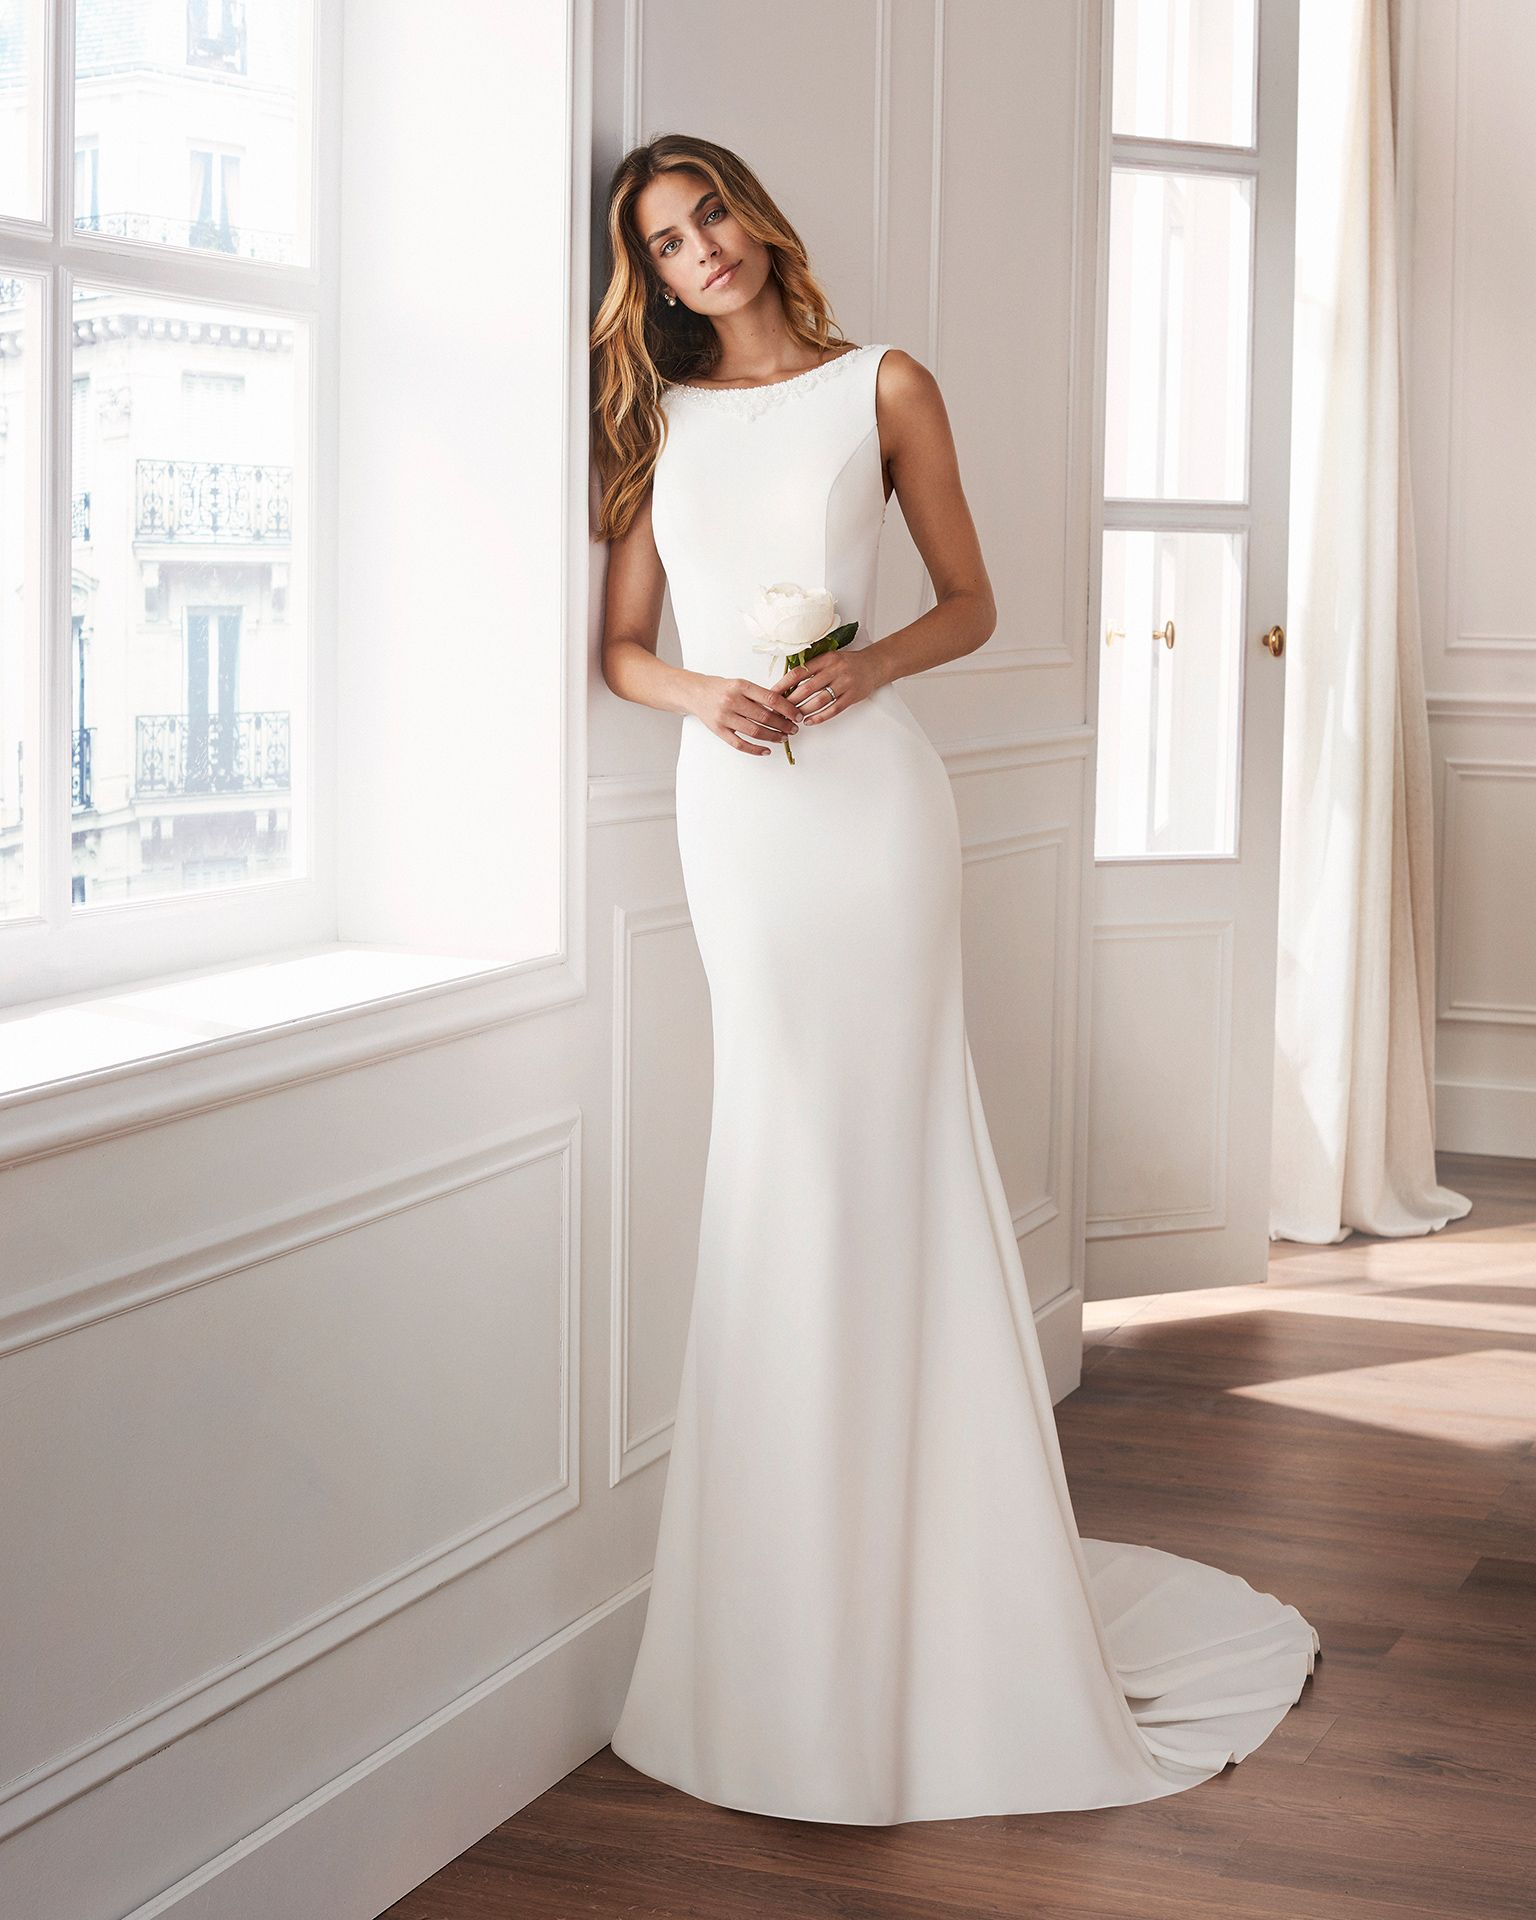 Sheathstyle wedding dress in crepe  With bateau neckline, train and jewelled back  Available in natural  2019 Collection  is part of Wedding dresses -